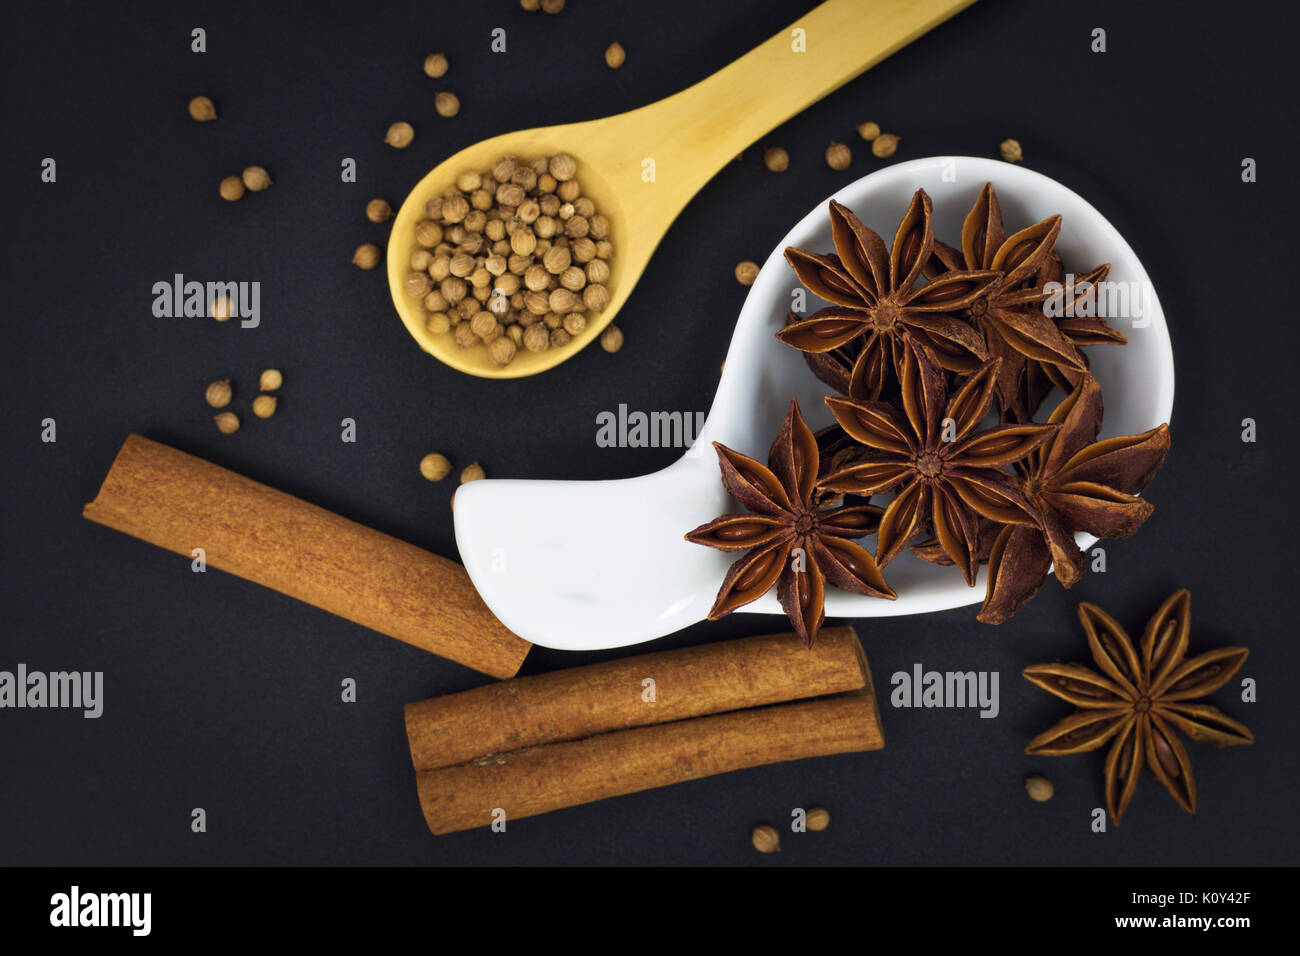 Star Anise and Spices coriander seeds, cumin seeds, cinnamon on black background with copy space - Stock Image